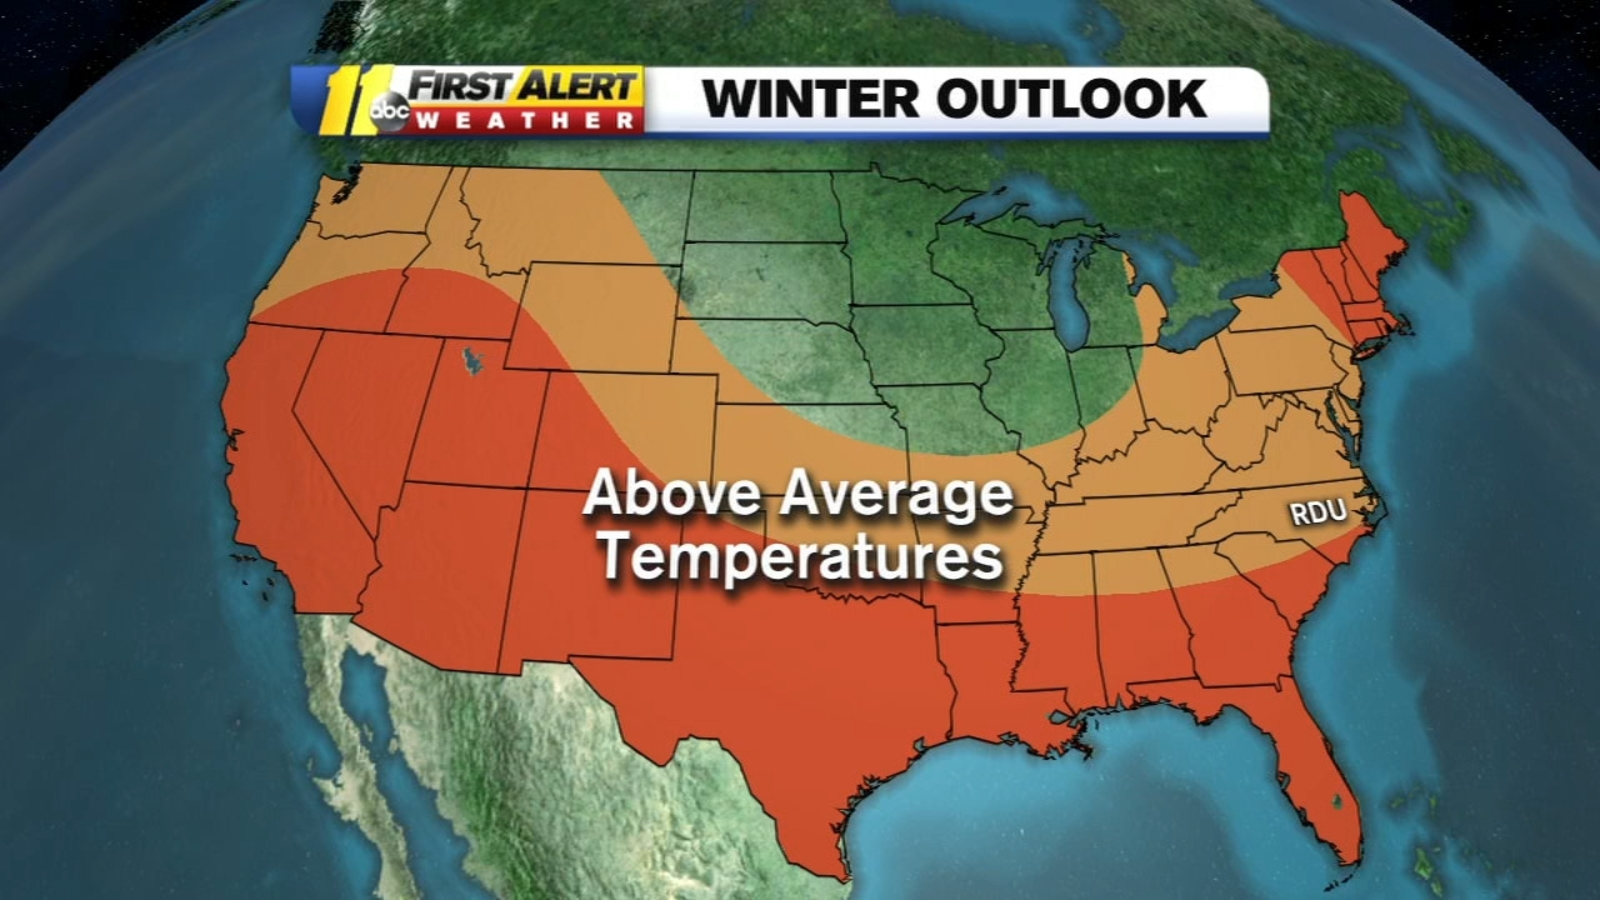 Winter Outlook: NC expects to have warmer than average winter